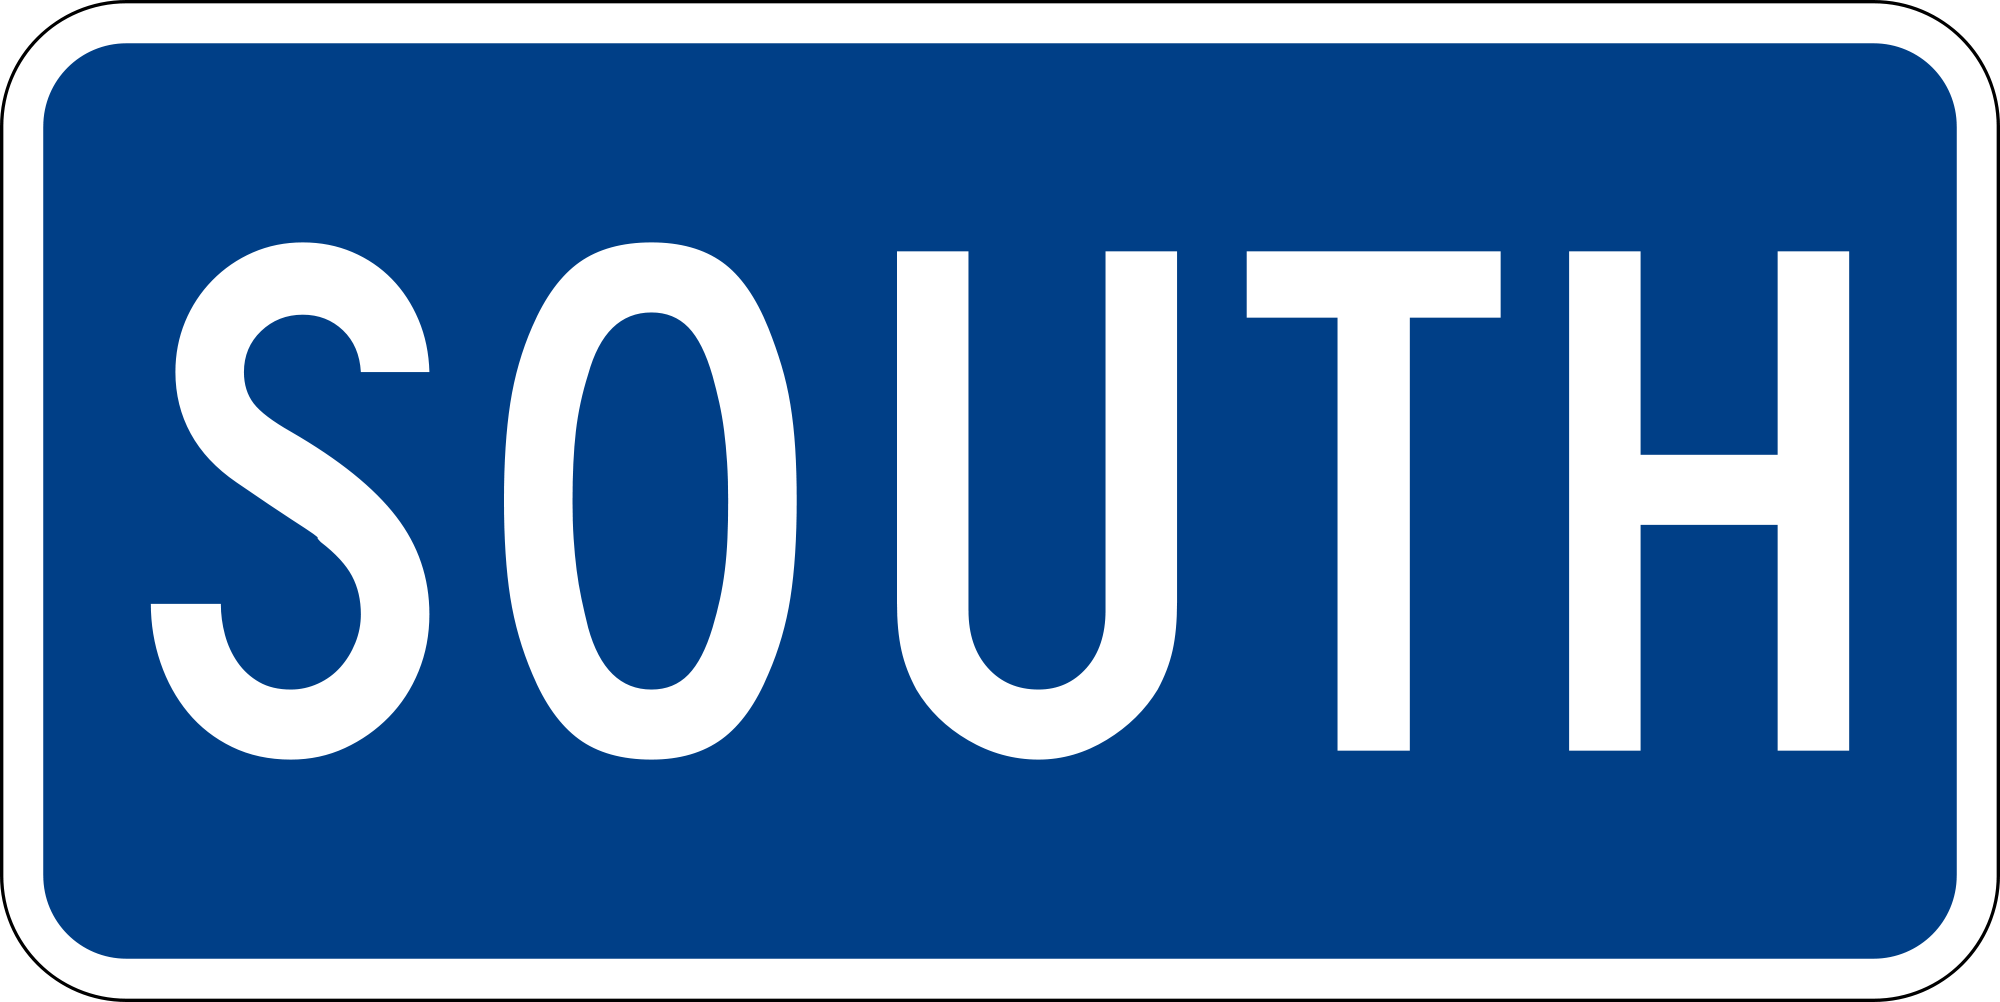 M3-3 Interstate Cardinal Direction Auxiliary Guide Sign